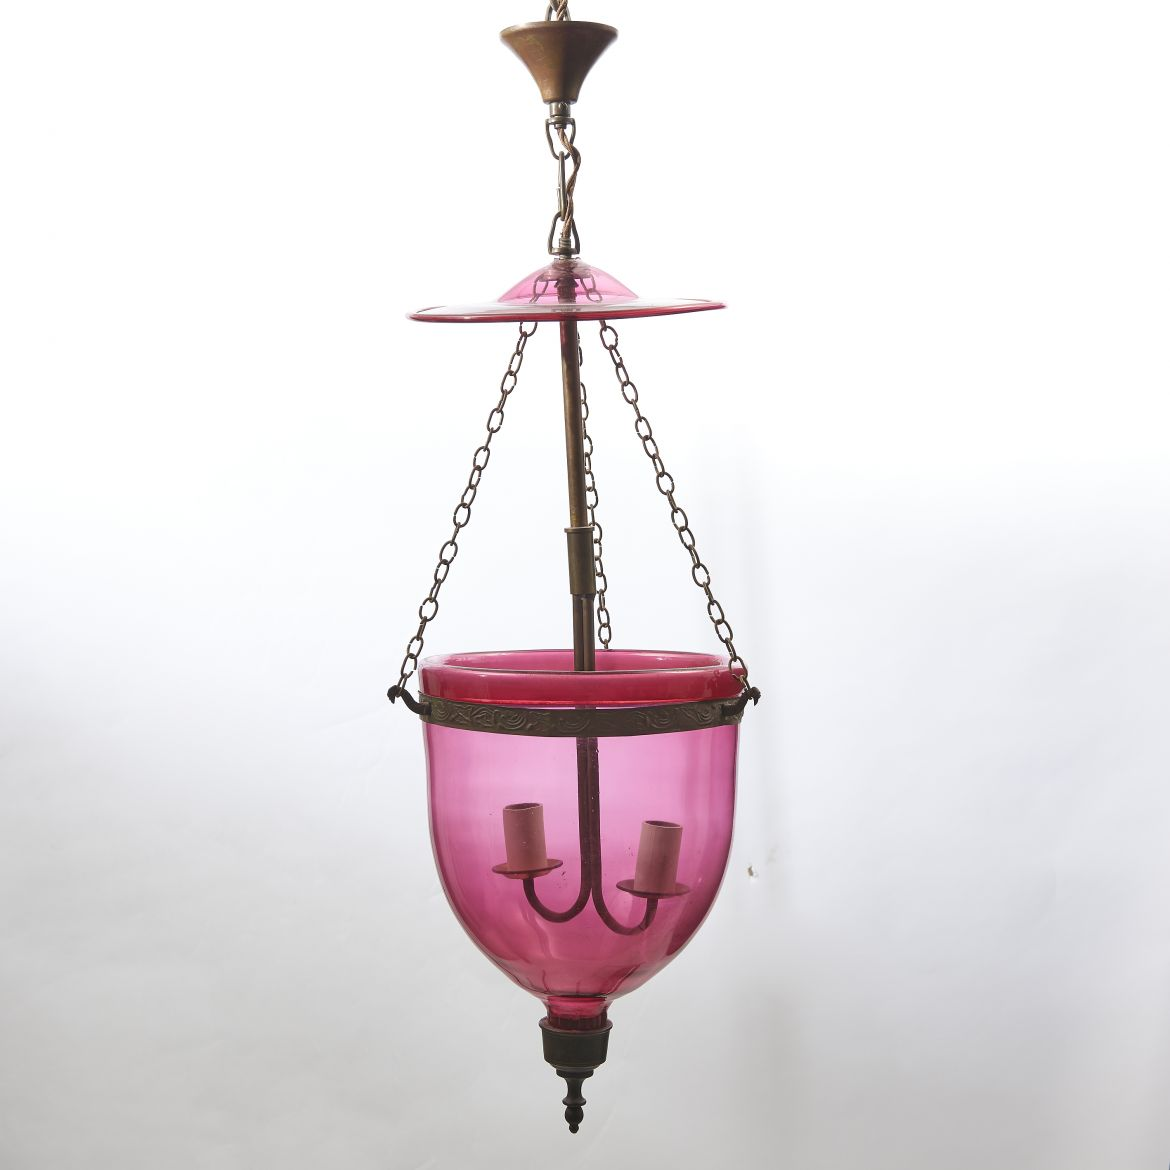 Cranberry glass Mosque Lantern